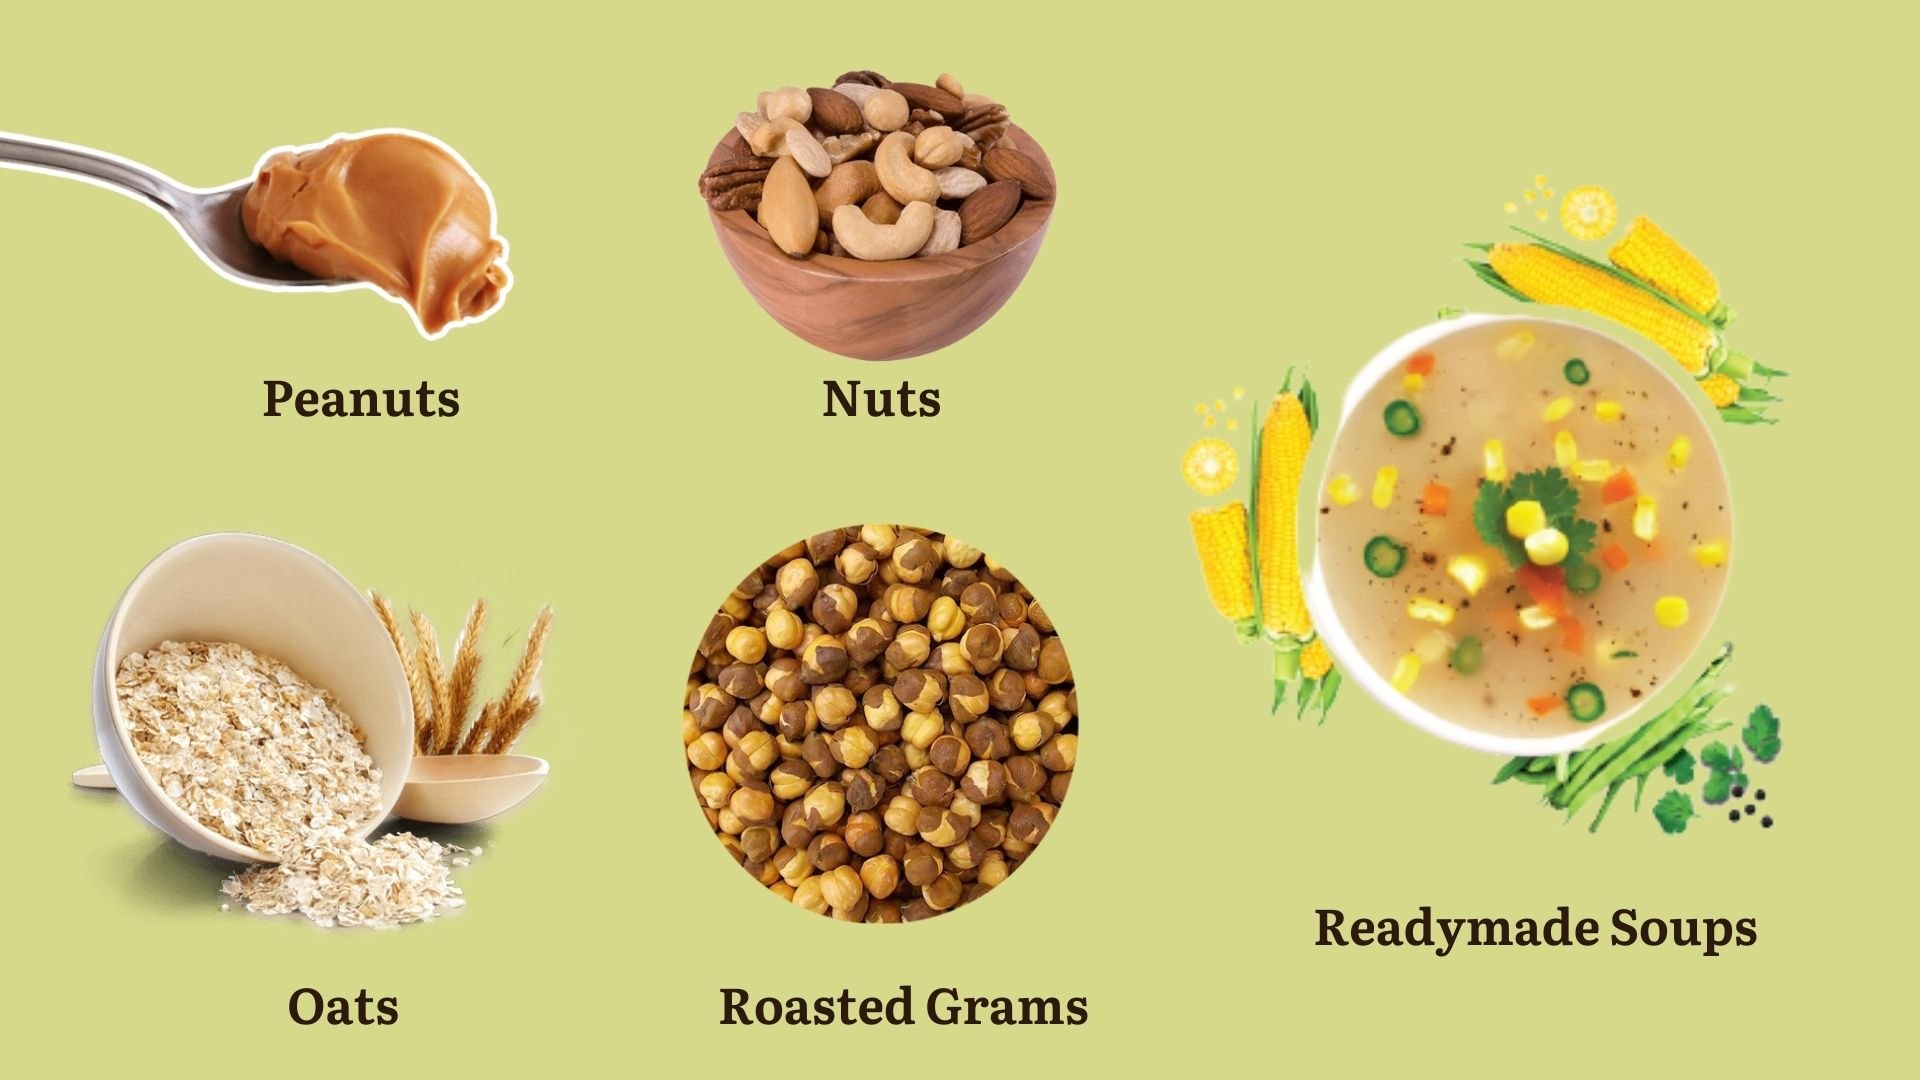 Peanuts-Nuts-Oats-Roasted Grams-Readymade Soups